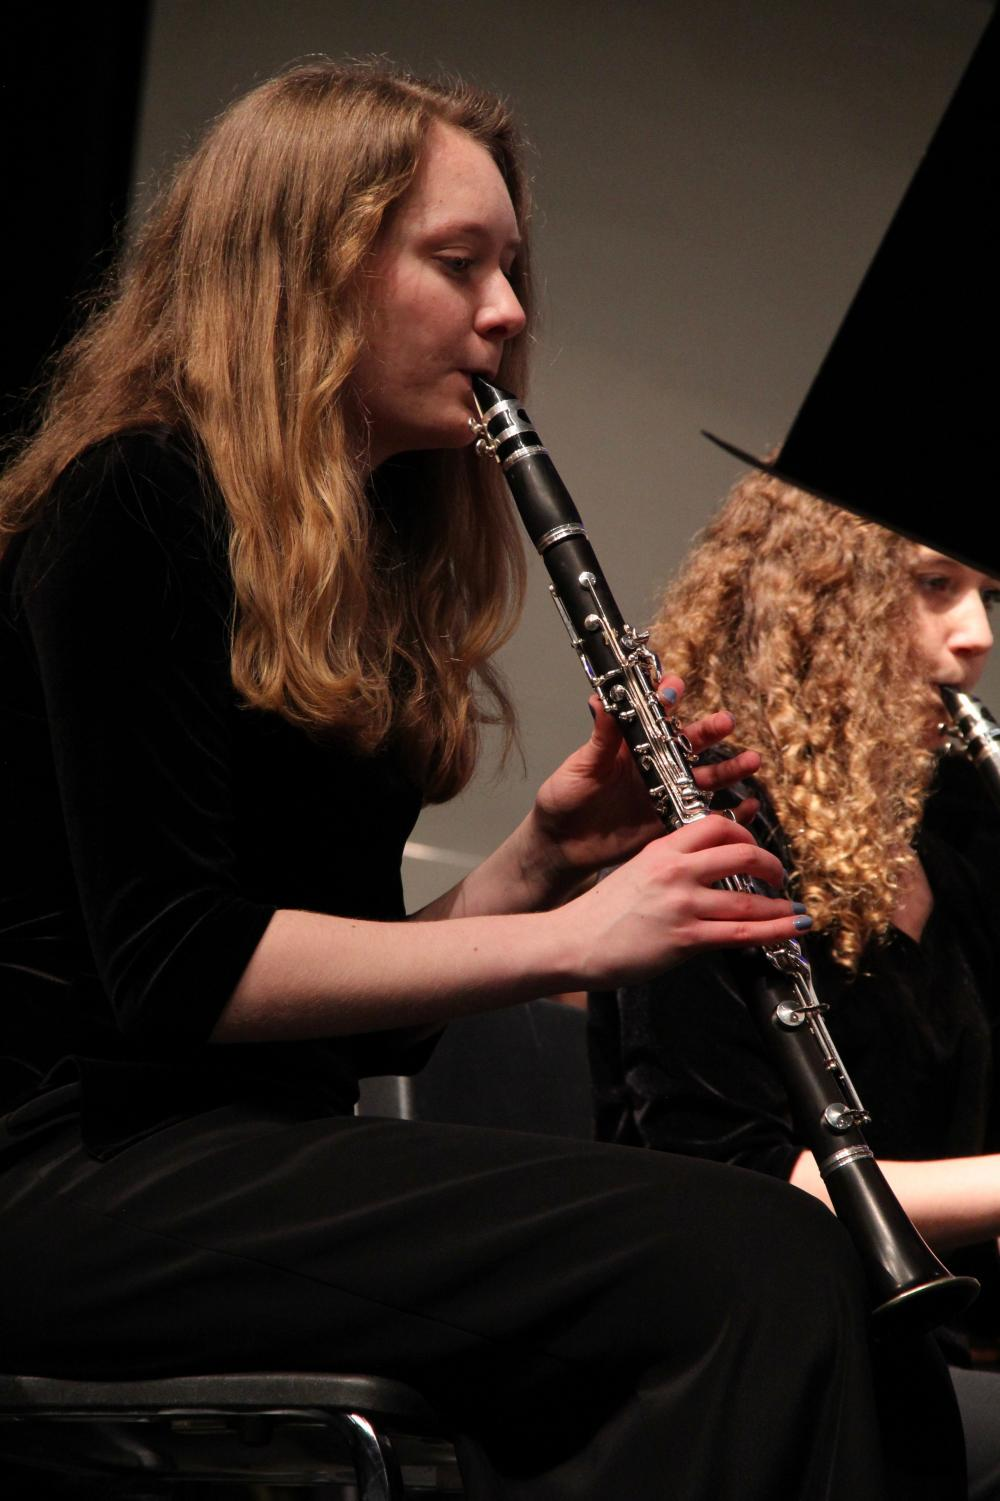 Julia+Pitz%2C+sophomore%2C+plays+her+clarinet+during+the+band%E2%80%99s+final+performance.+%0A